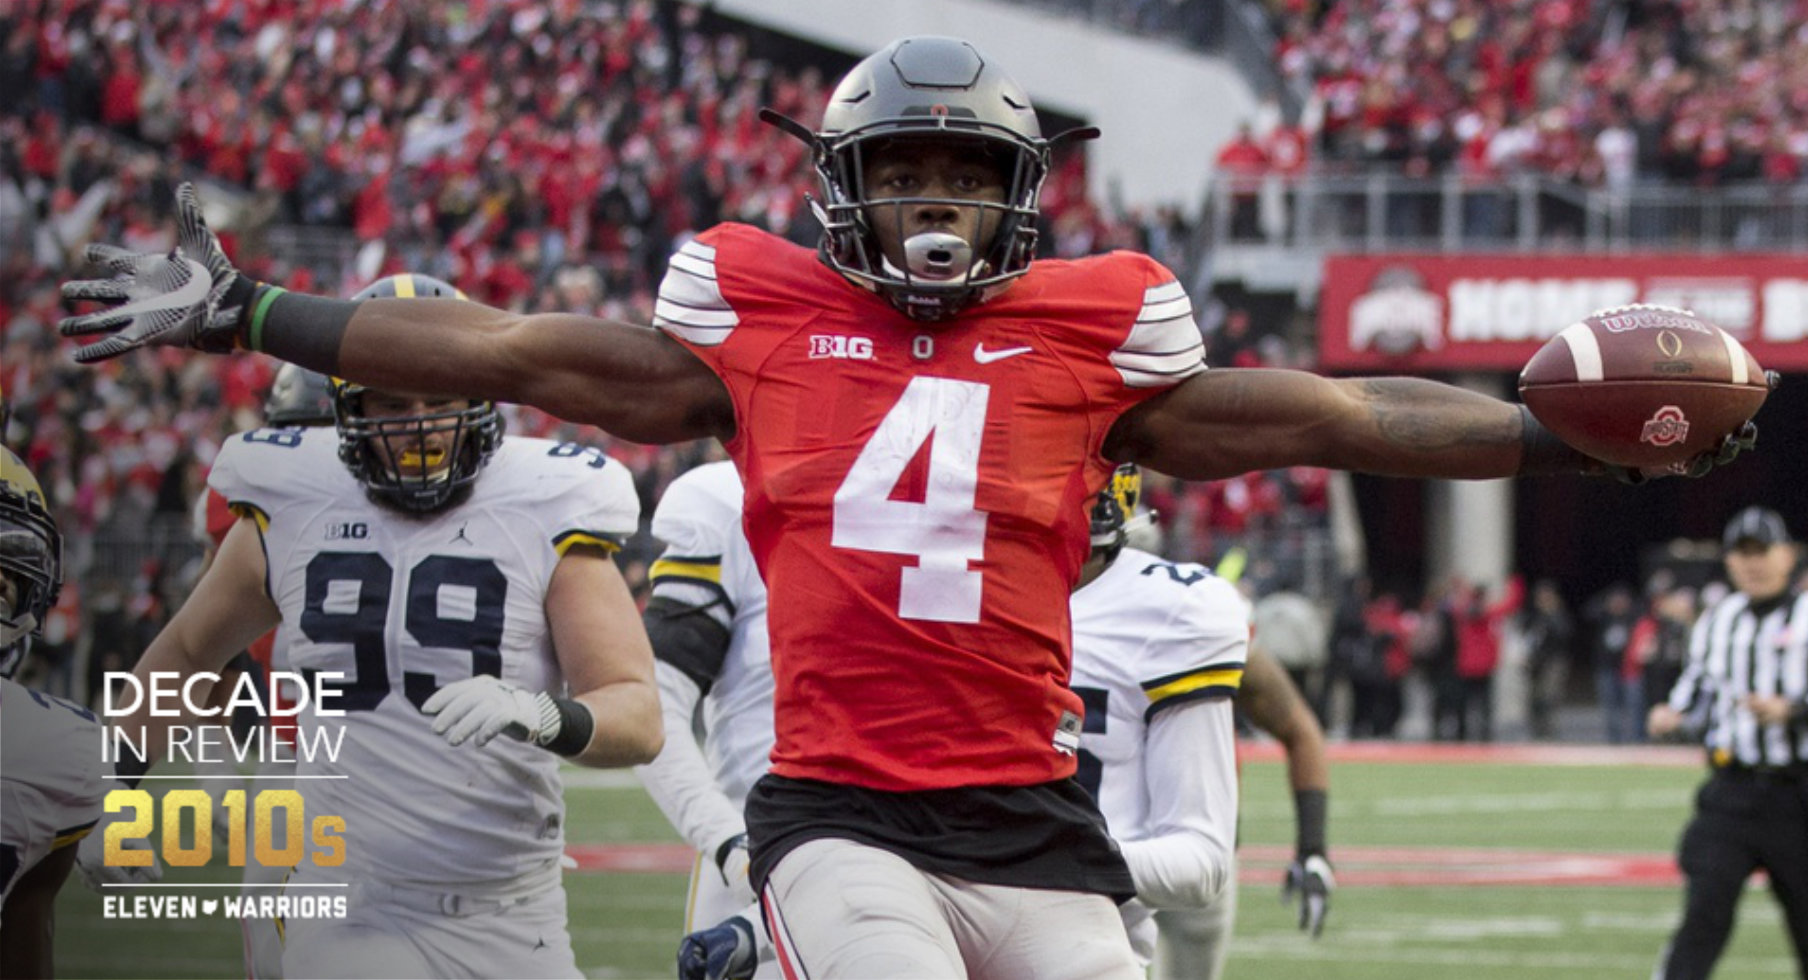 Decade in Review: Ranking Ohio State's Top 10 Plays Against Michigan From 2010-19